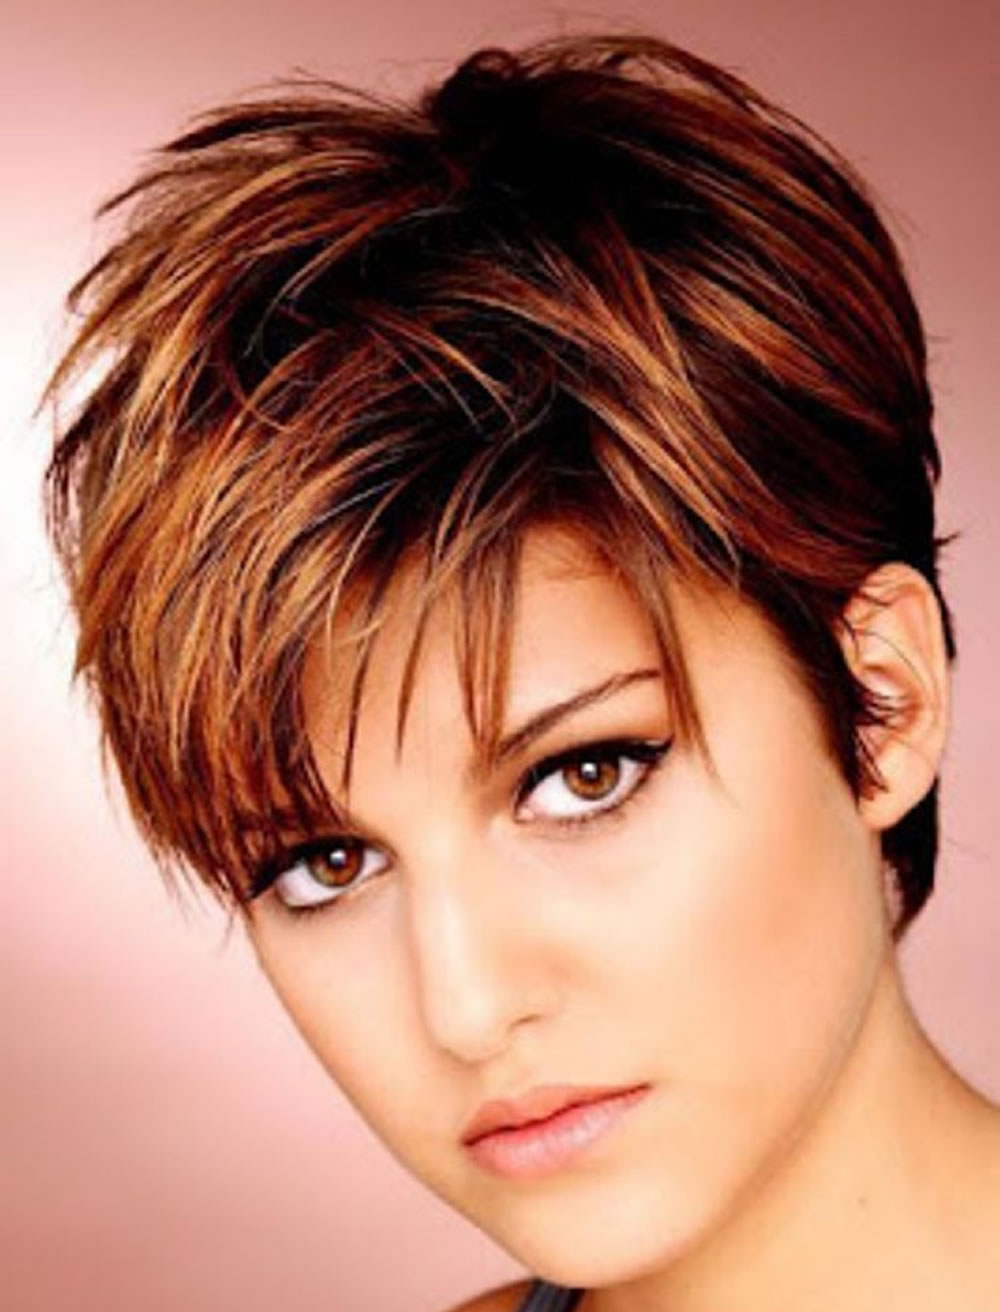 Short Haircuts For Round Face Thin Hair Ideas For 2018 – Hairstyles Within Short Hairstyles For Chubby Face (View 15 of 25)